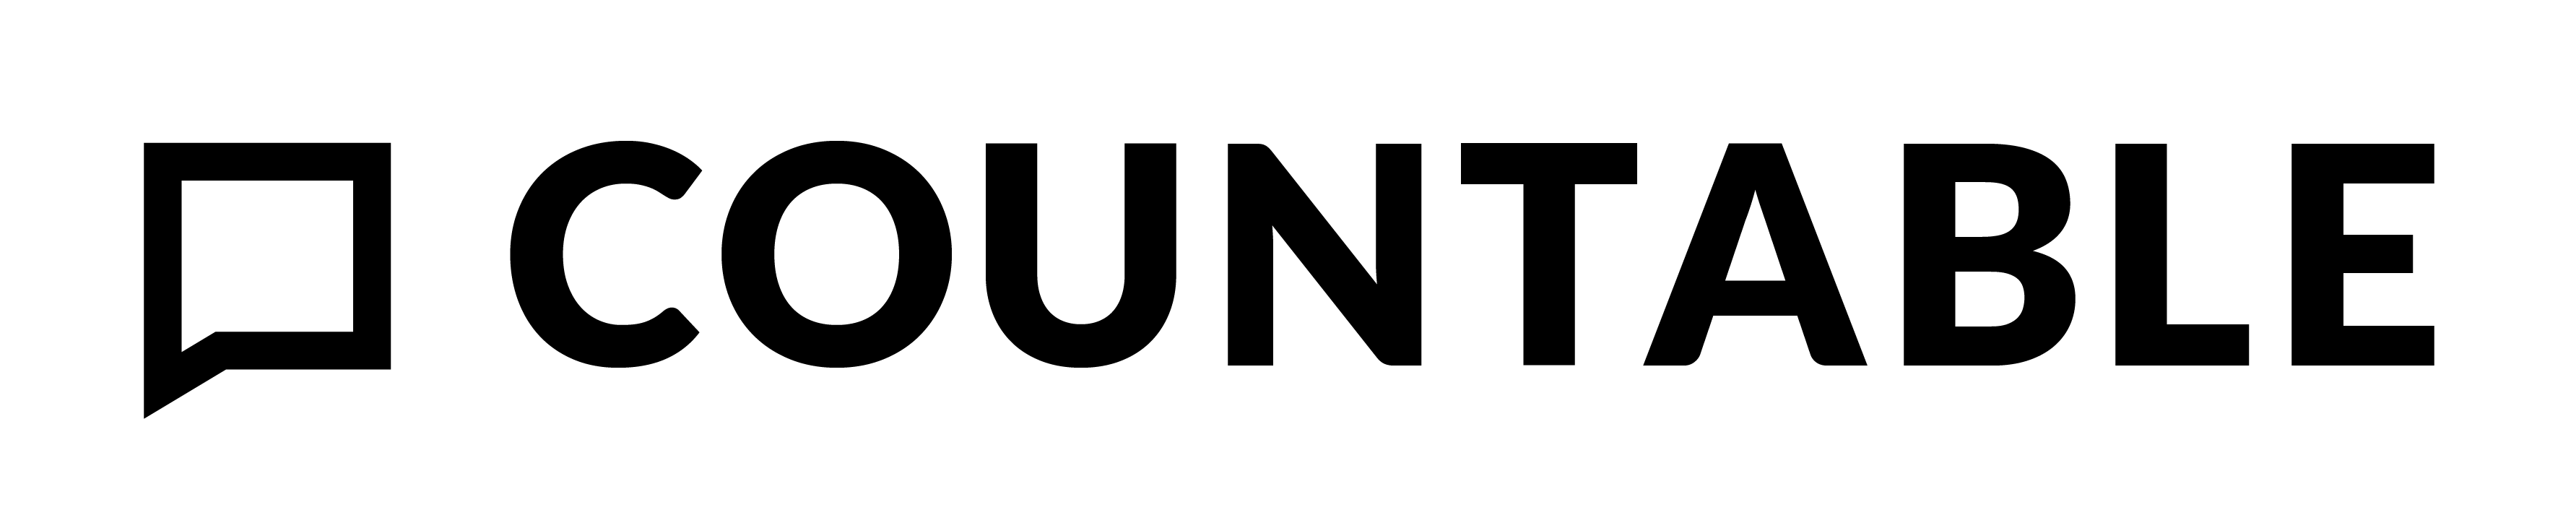 Final-Updated-Countable-Logo